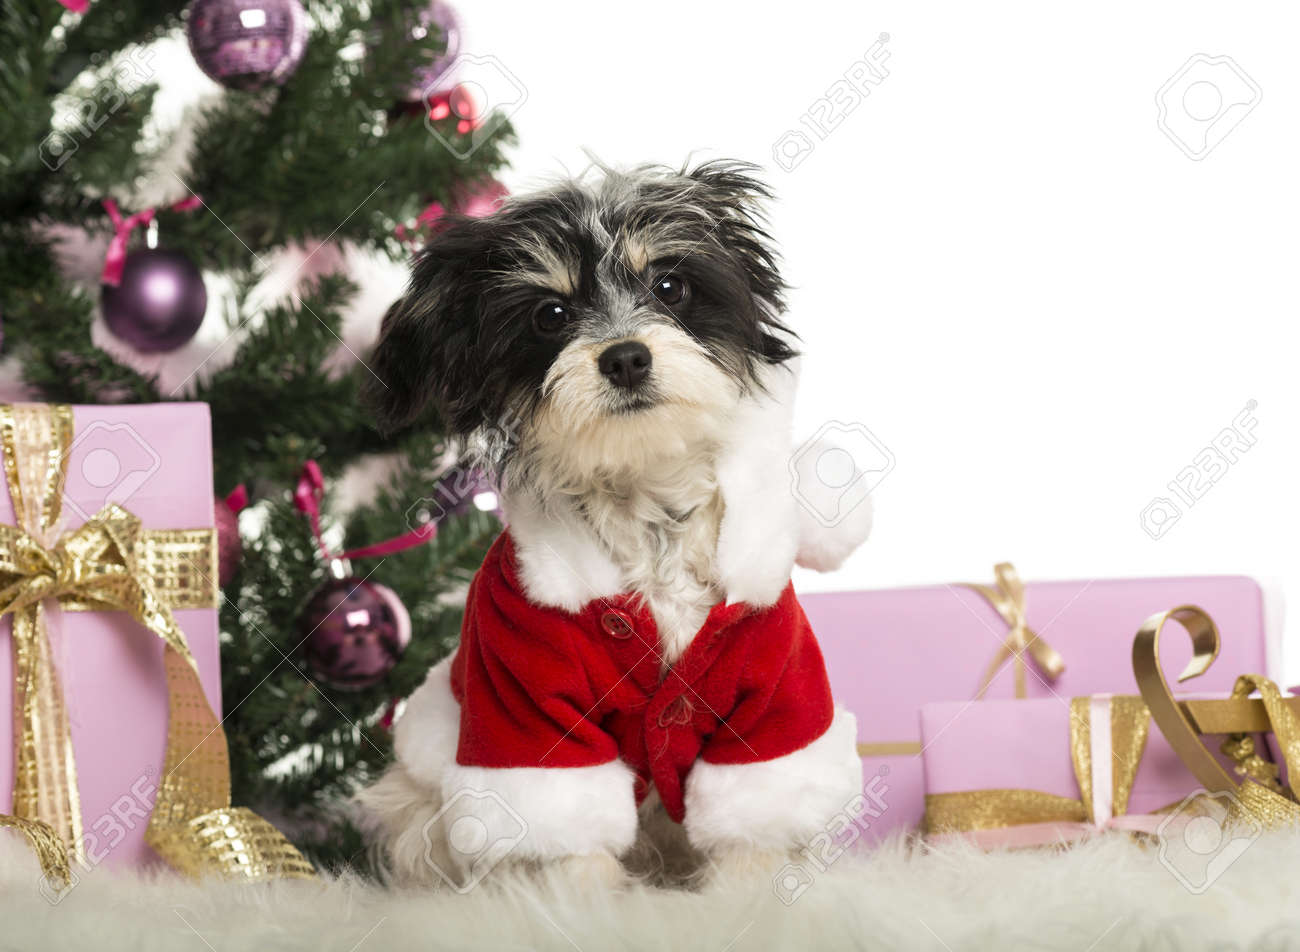 Maltese sitting and wearing a Christmas suit in front of Christmas decorations against white background Stock Photo - 19013060